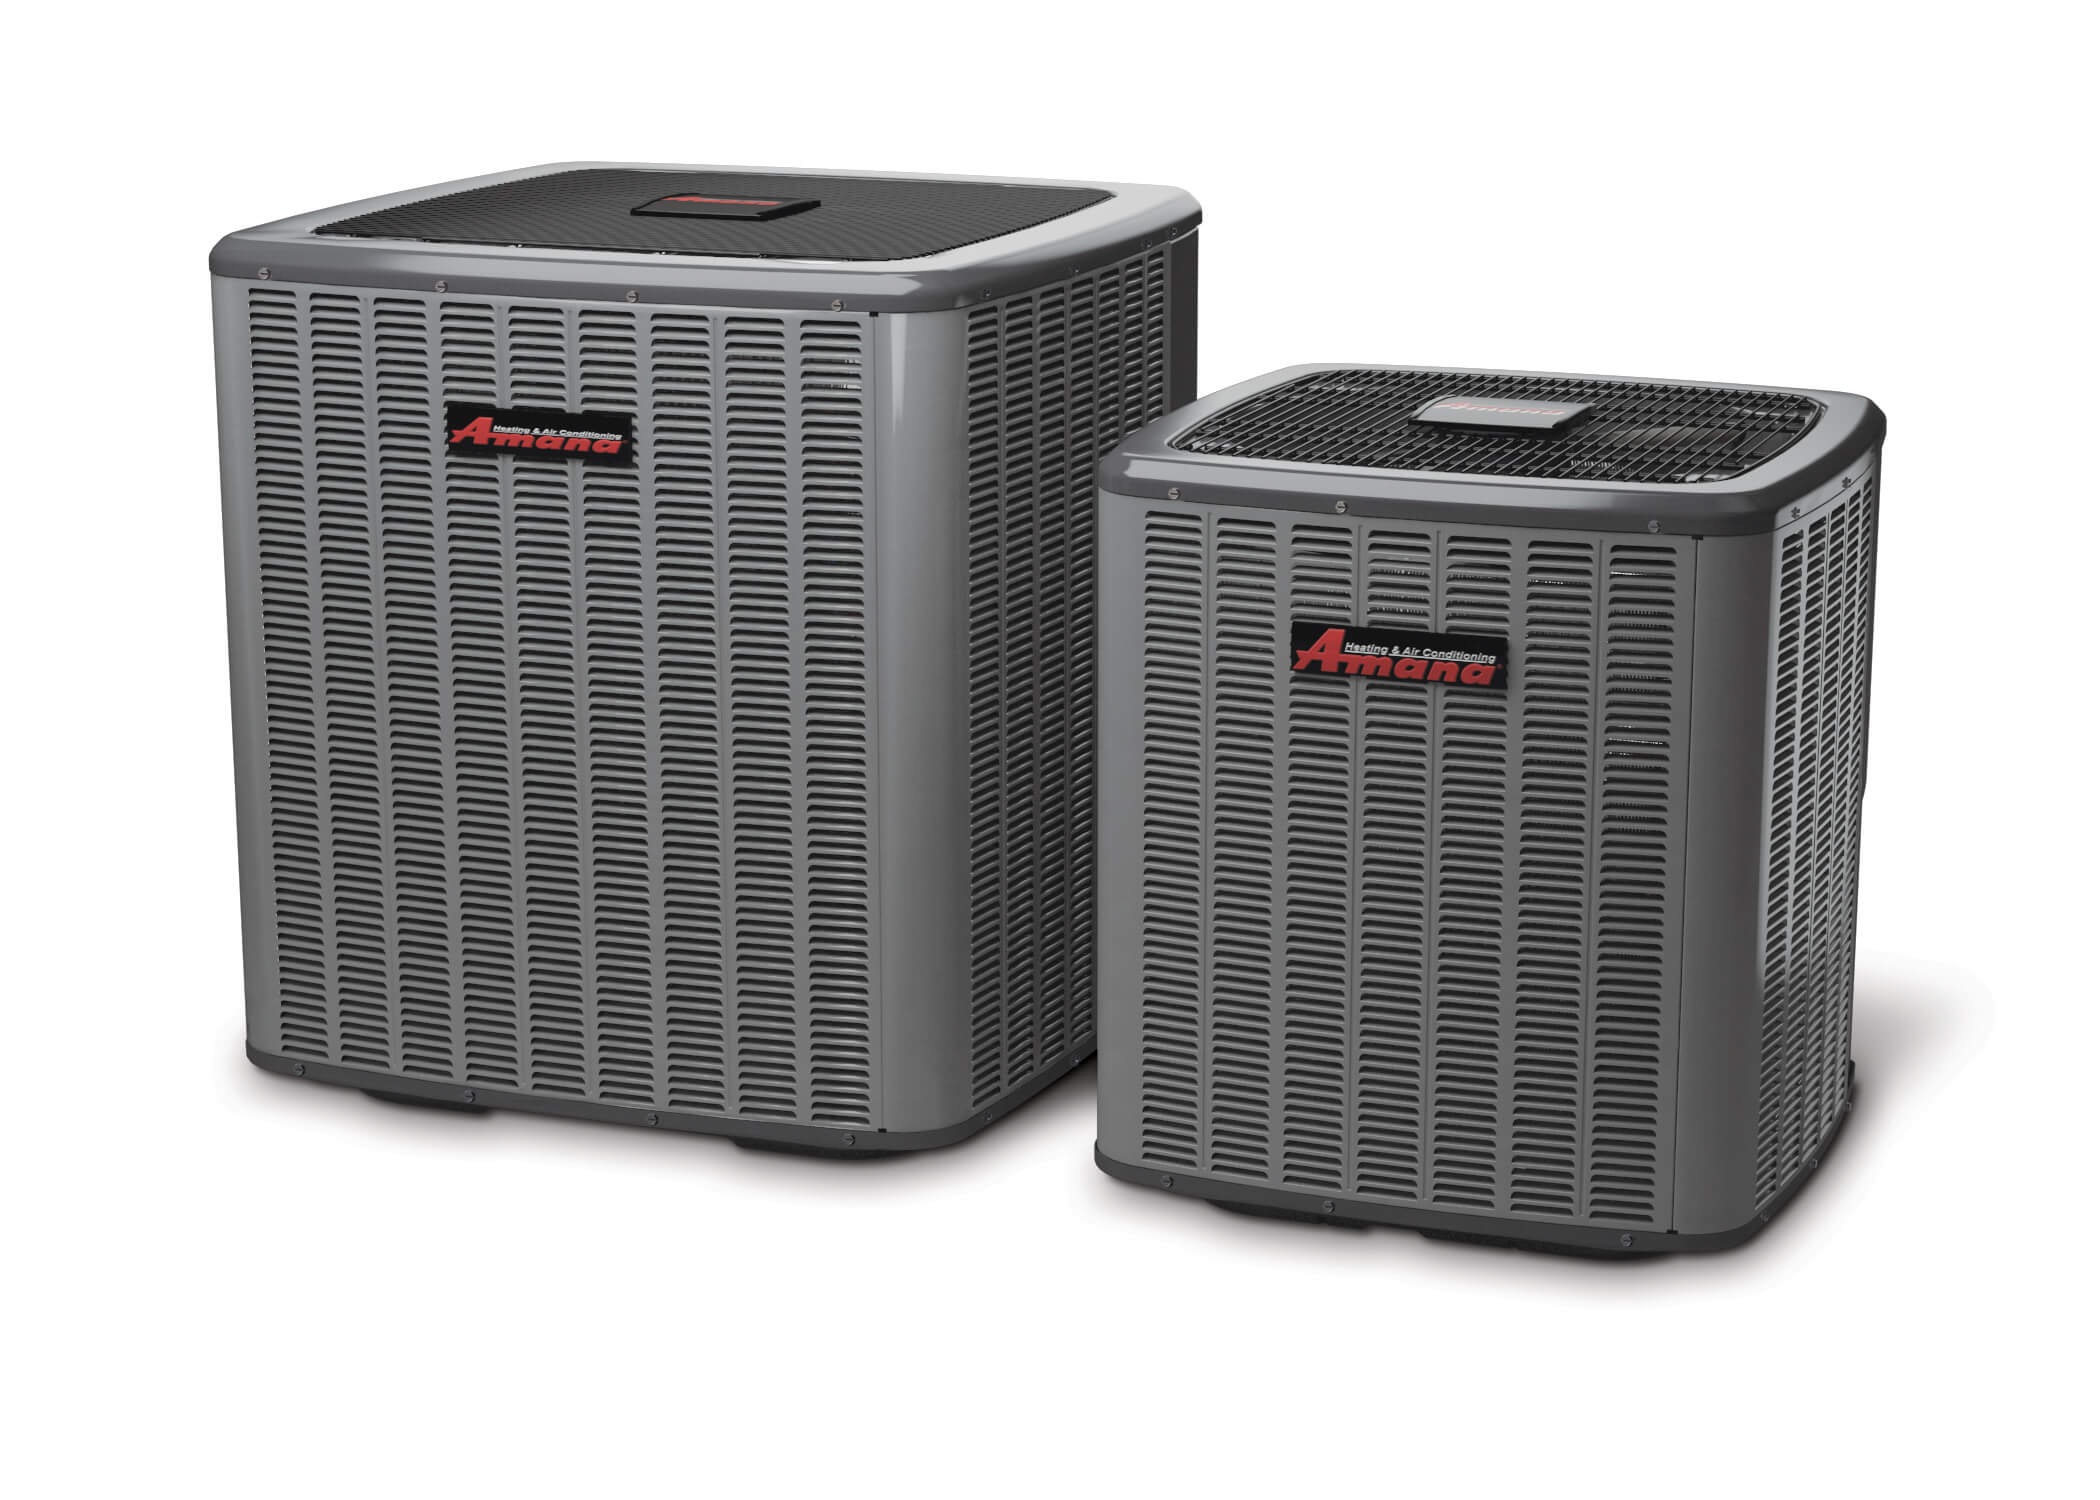 We offer 24/7 emergency Heater repair service in Plainfield IL.